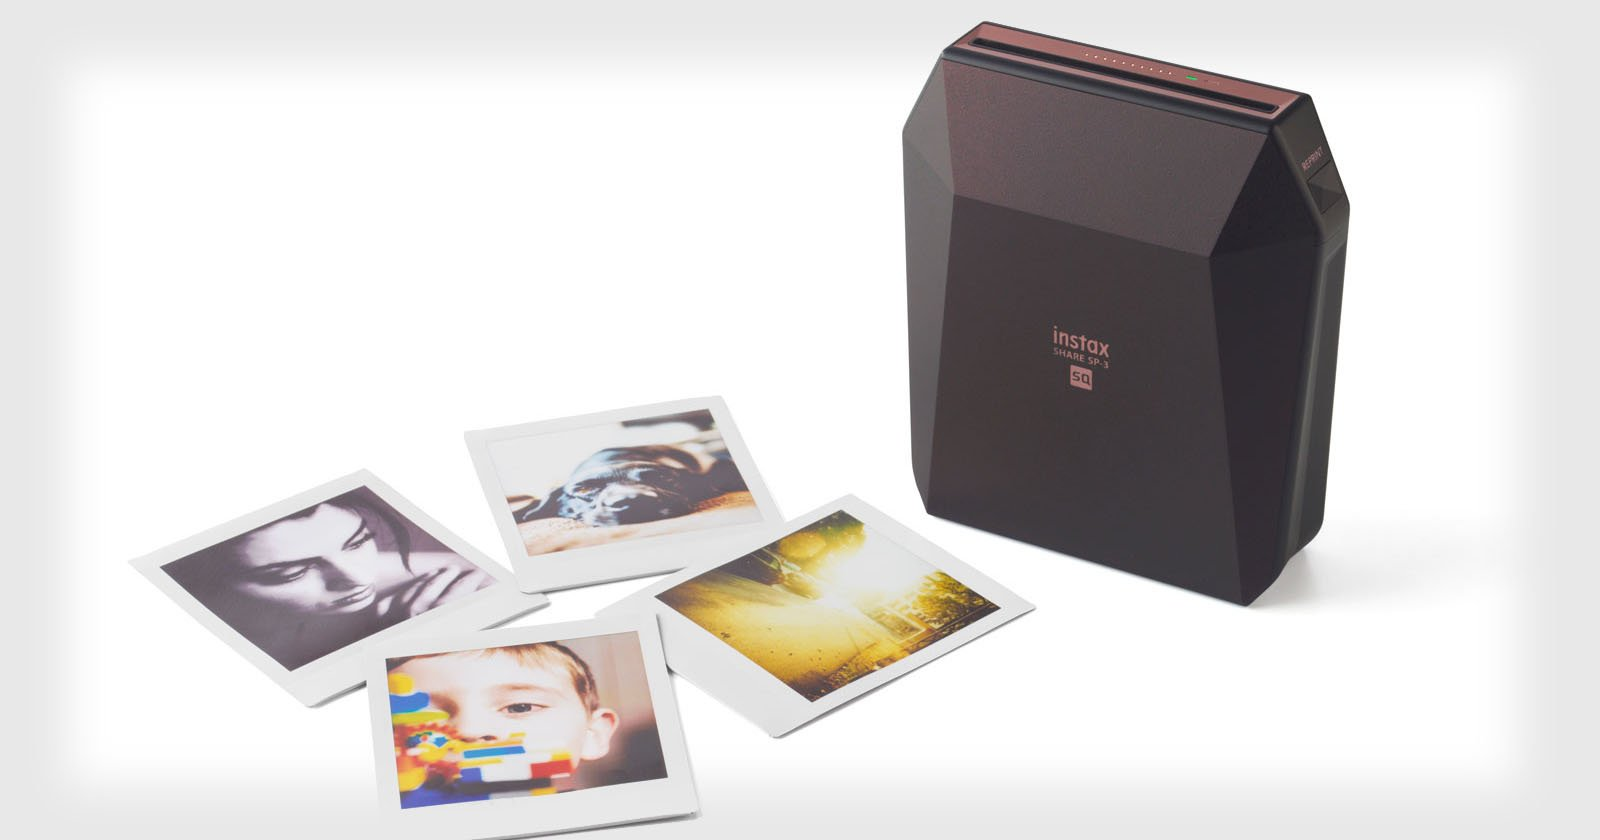 fujifilm 39 s new instax share sp 3 is its first square format photo printer. Black Bedroom Furniture Sets. Home Design Ideas